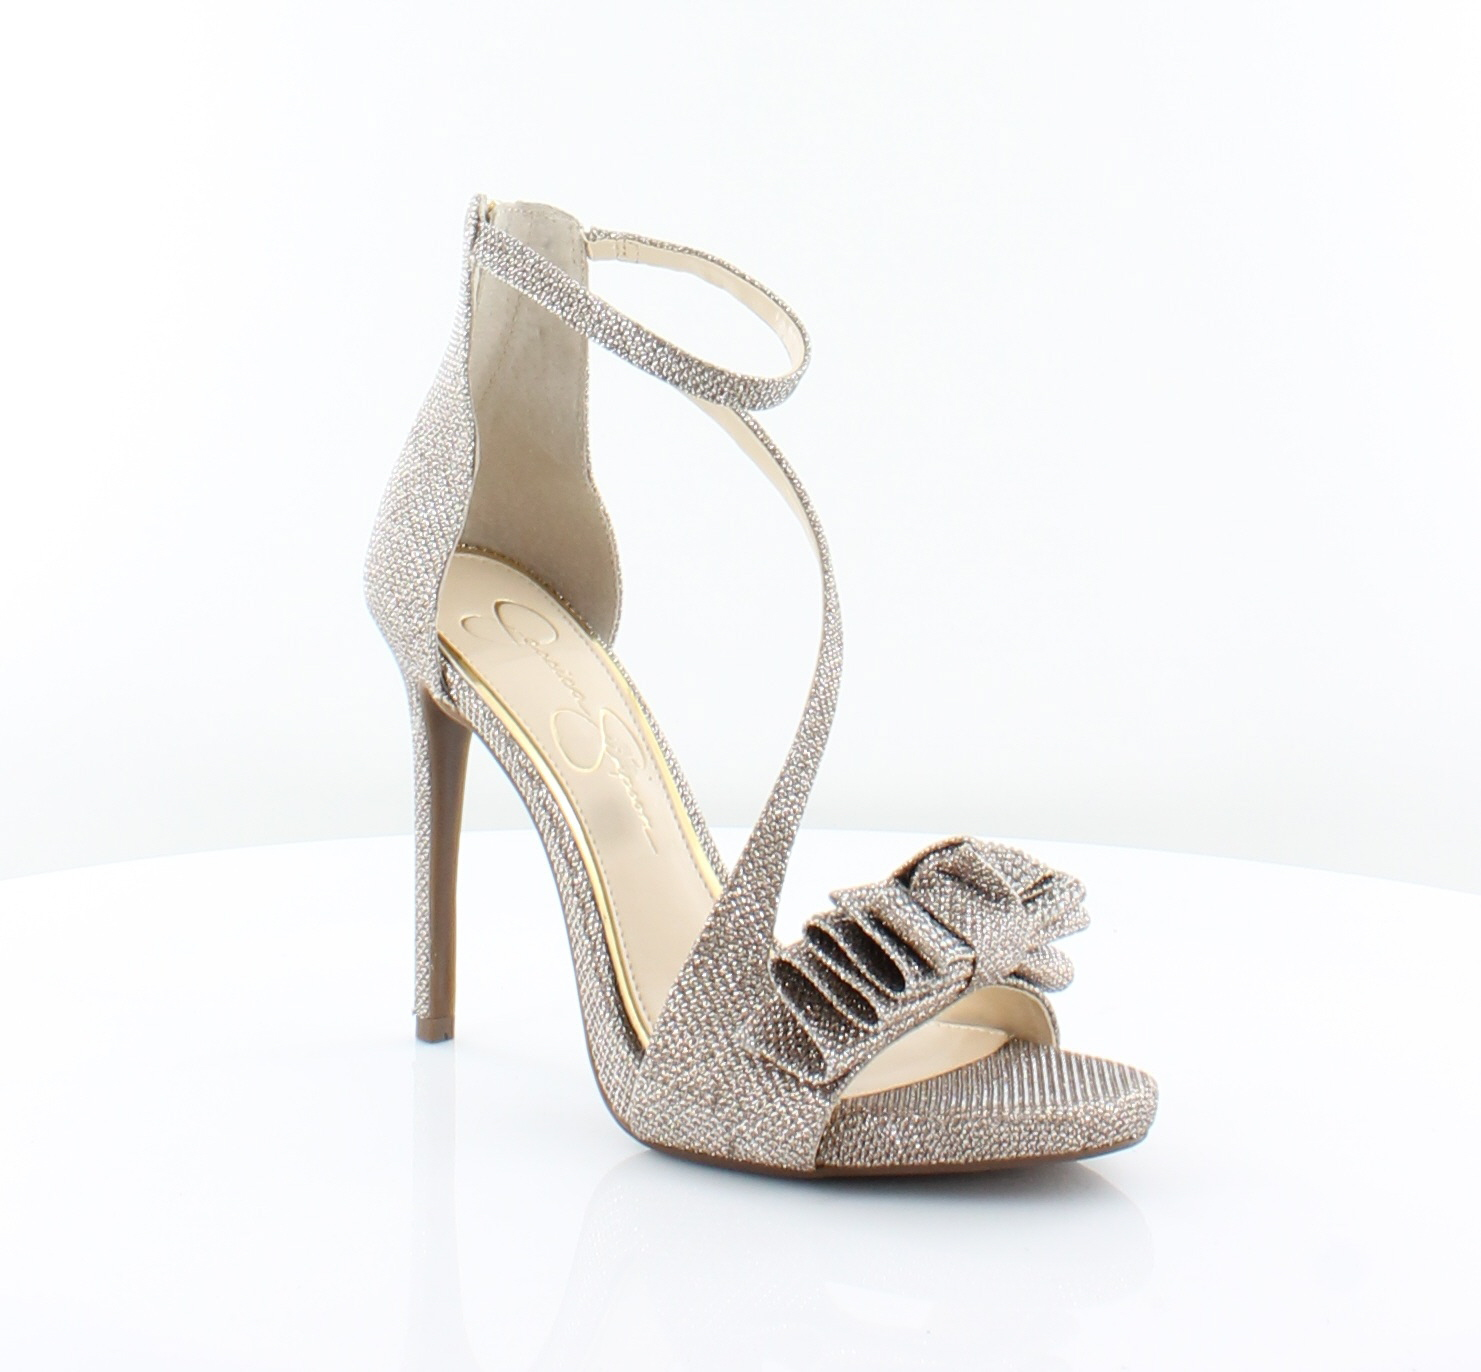 1ced9da3b710 Jessica Simpson New Remyia Gold Womens Shoes Size 6.5 M Heels MSRP ...